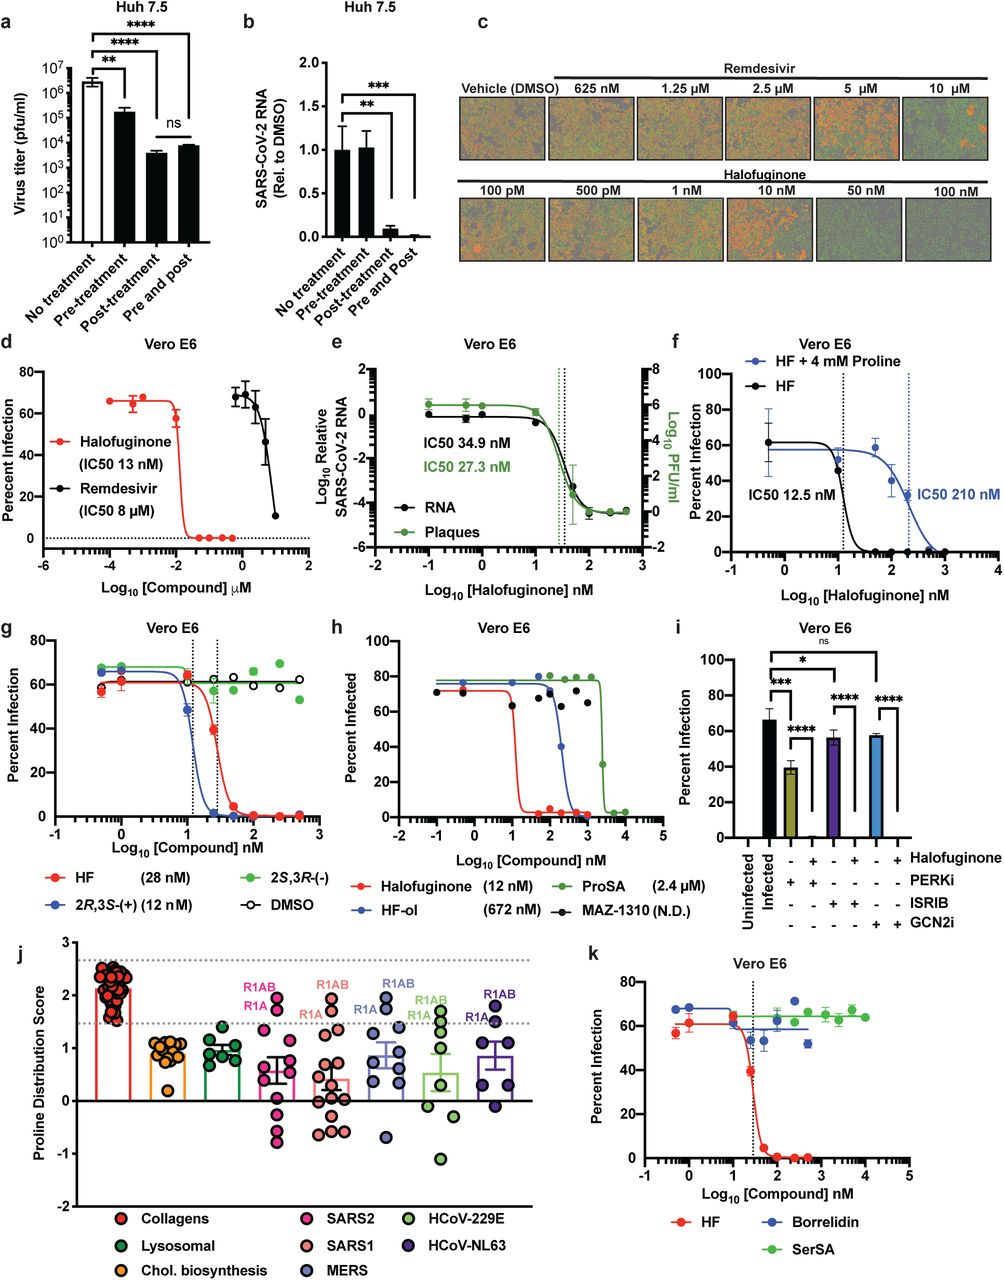 Halofuginone Inhibits infection and replication of authentic SARS-CoV-2. a-b, Authentic SARS-CoV-2 virus infection of Huh7.5 cells treated with Halofuginone. Huh7.5 cells treated with halofuginone pre- or post-infection, or both pre- and post-infection with authentic SARS-CoV-2 virus. Viral titers ( a ) and quantification of viral RNA ( b ) in the infected cells is shown. c, Immunofluorescent quantification of viral nucleocapsid (red) protein in Vero E6 cells treated with Halofuginone and Remdesivir and infected with authentic SARS-CoV-2 virus (nuclei = green). d, Authentic SARS-CoV-2 virus infection of Vero E6 cells treated with Halofuginone and Remdesivir as measured in flow cytometry. e, Quantification of plaque formation and viral RNA in Vero E6 cells treated with Halofuginone and Remdesivir and infected with authentic SARS-CoV-2 virus. f, Rescue experiment of the effect of halofuginone treatment on SARS-CoV-2 infection using excess proline. g , Treatment of Vero E6 cells with halofuginone and enantiomers and their effect on SARS-CoV-2 infection. h, Treatment of Vero E6 cells with modulators of the PRS pathway and their effect on SARS-CoV-2 infection. i, Treatment of Vero E6 cells with modulators of the ISR pathway and their effect on SARS-CoV-2 infection. j, The distribution of proline distribution and density depicted as a proline distribution score for collagens, cholesterol biosynthetic proteins, lysosomal proteins and viral SARS-CoV-2 (SARS2), SARS-CoV-1 (SARS1), MERS-CoV (MERS), HCoV-229E and HCoV-LN63 proteins( ## p ≤ 0.01 collagen s vs. all other protein classes). k, Treatment of Vero E6 cells with AARS inhibitors and their effect on SARS-CoV-2 infection. Data shown as mean ± S.D. Statistics performed by 1-way ANOVA and uncorrected Fisher's LSD test (ns: p > 0.05, *: p ≤ 0.05, **: p ≤ 0.01, ***: p ≤ 0.001, ****: p ≤ 0.0001, ## : p ≤ 0.01.